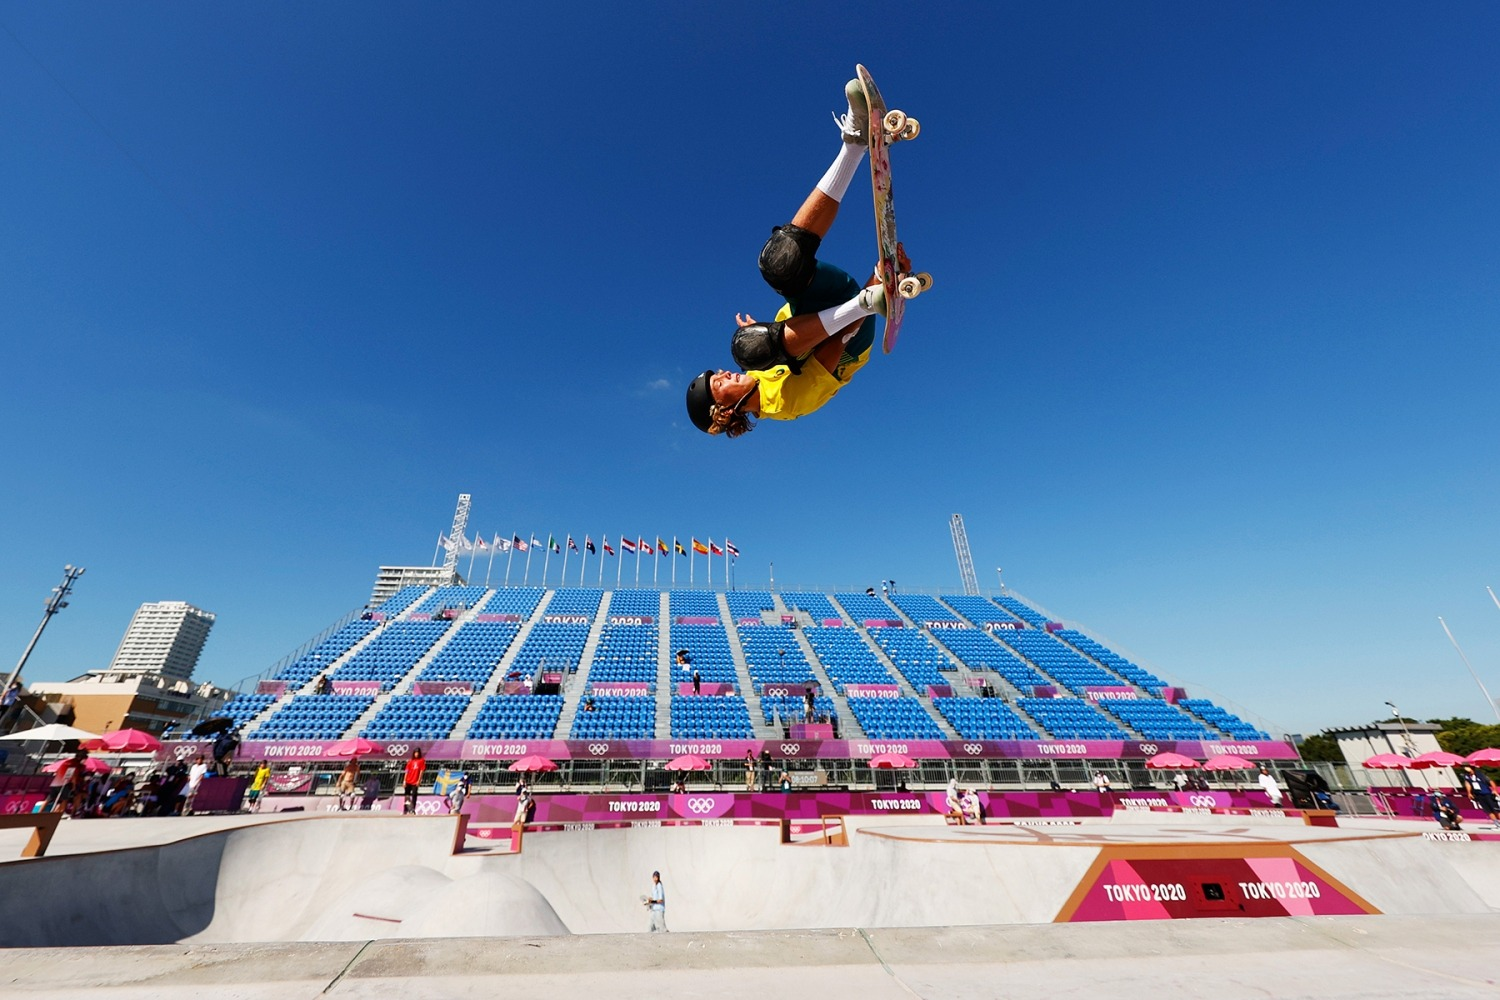 TOKYO, JAPAN - AUGUST 05: Keegan Palmer of Team Australia warms up prior to the Men's Skateboarding Park Preliminary Heat on day thirteen of the Tokyo 2020 Olympic Games at Ariake Urban Sports Park on August 05, 2021 in Tokyo, Japan. (Photo by Ezra Shaw/Getty Images)